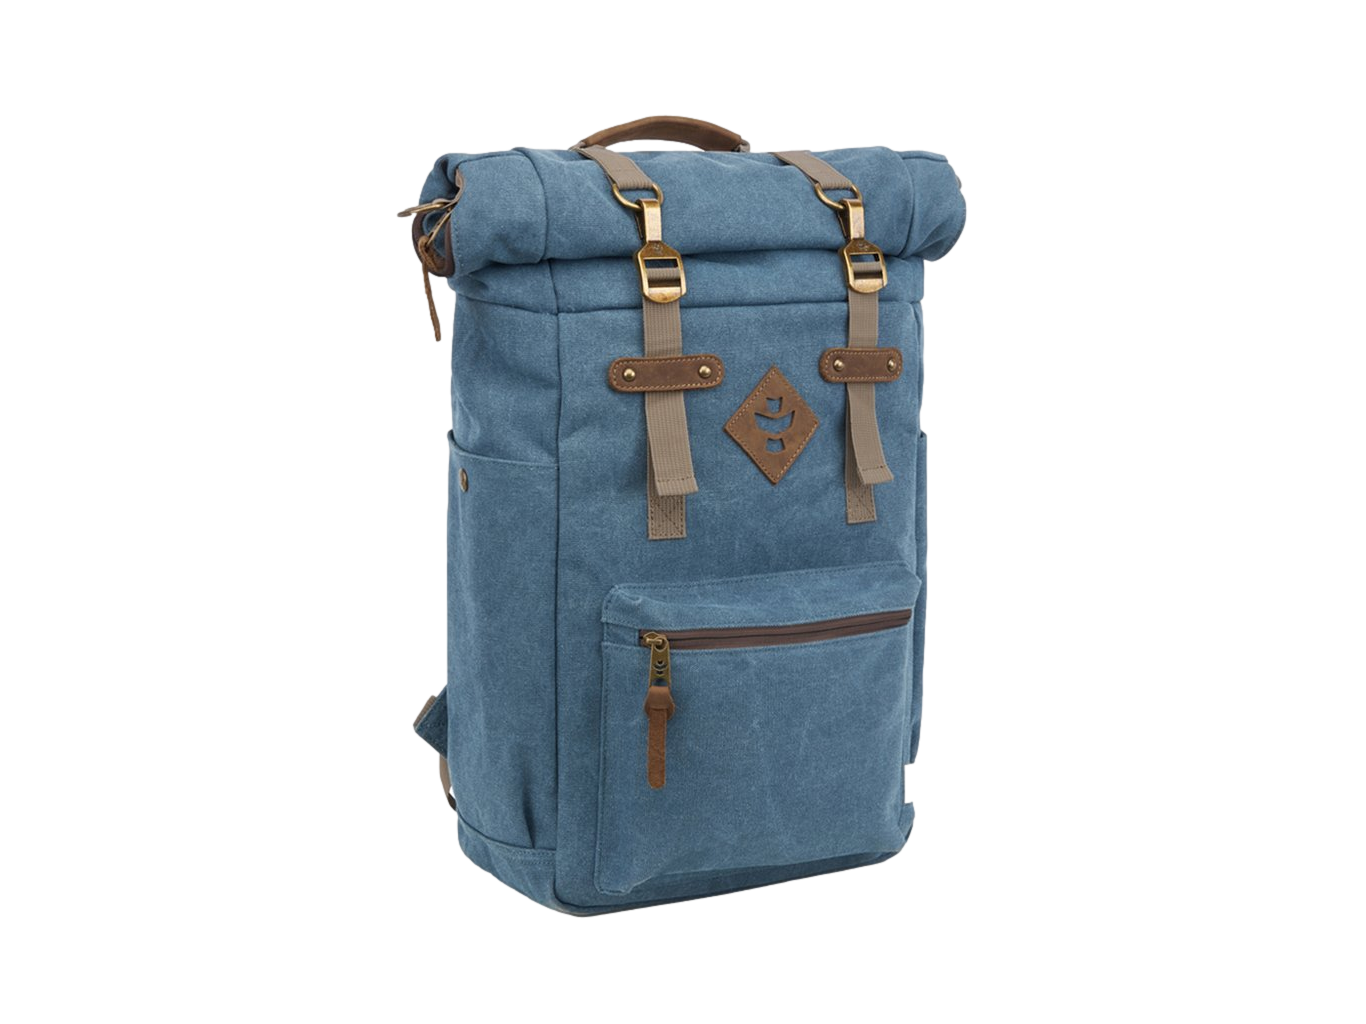 Revelry The Drifter Roll top Backpack 23L